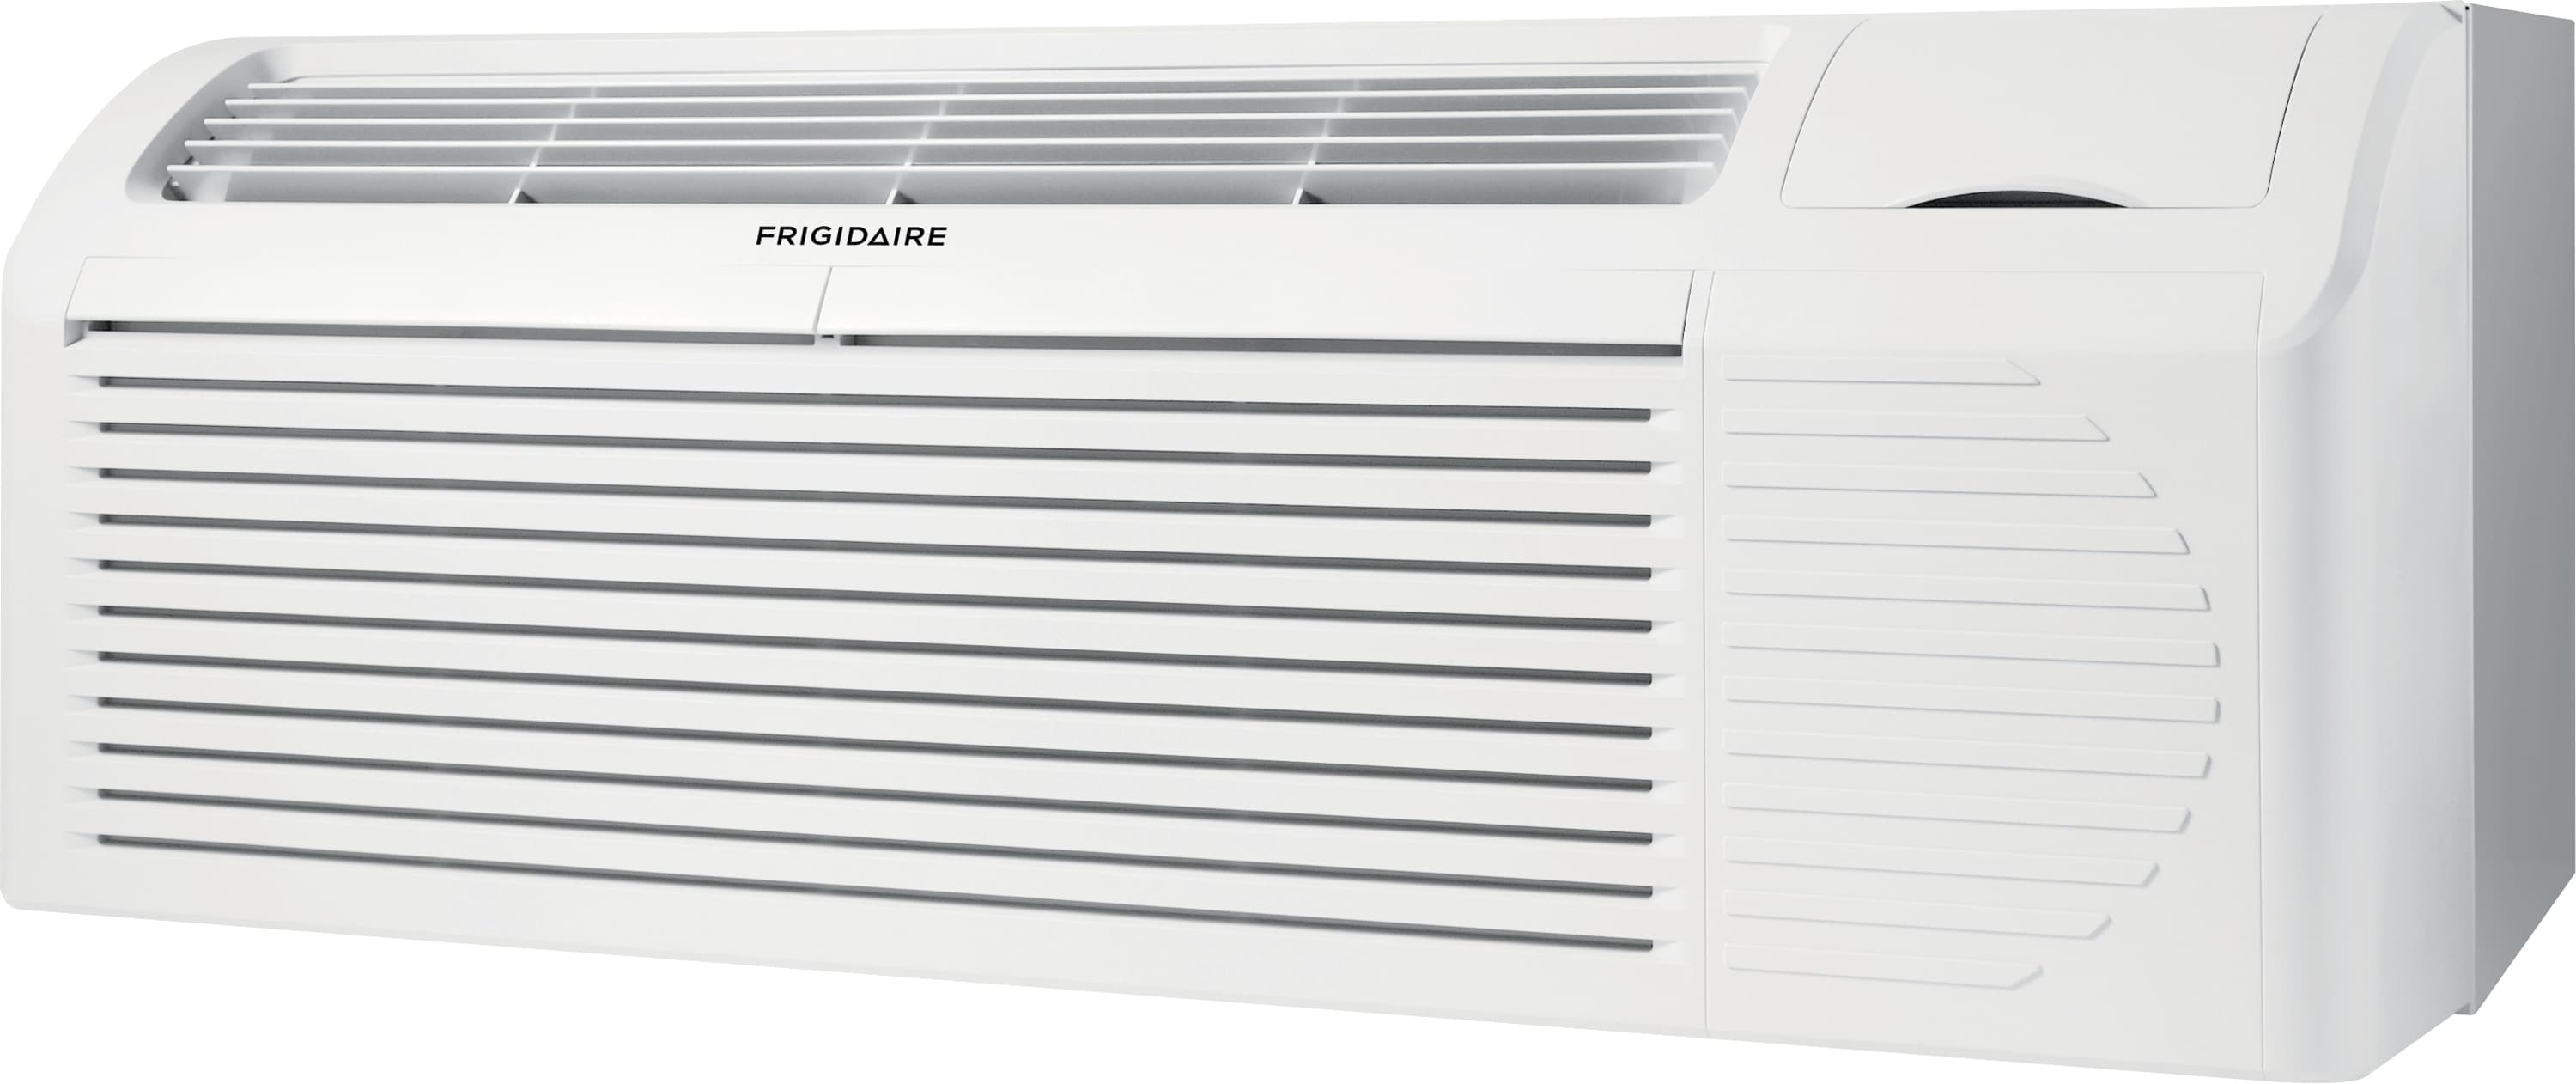 PTAC unit with Heat Pump and Electric Heat backup 7,000 BTU 265V with Corrosion Guard and Dry Mode